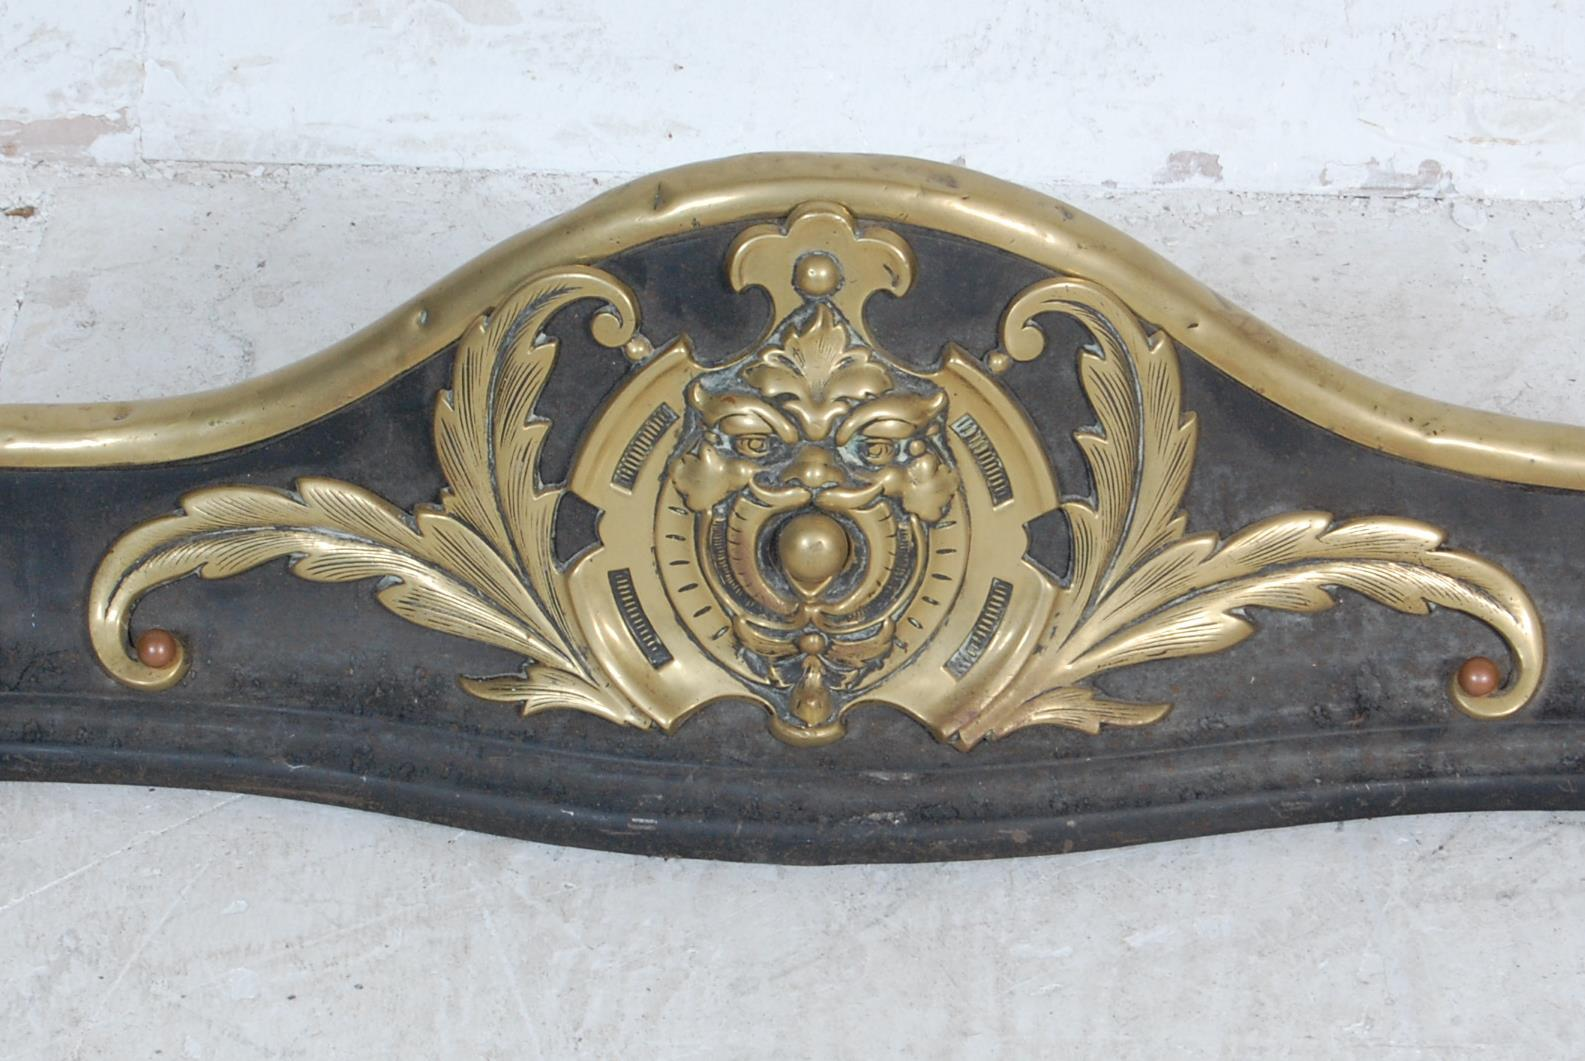 20TH CENTURY ART NOUVEAU STYLE BRASS AND IRON FIRE FENDER - Image 2 of 5